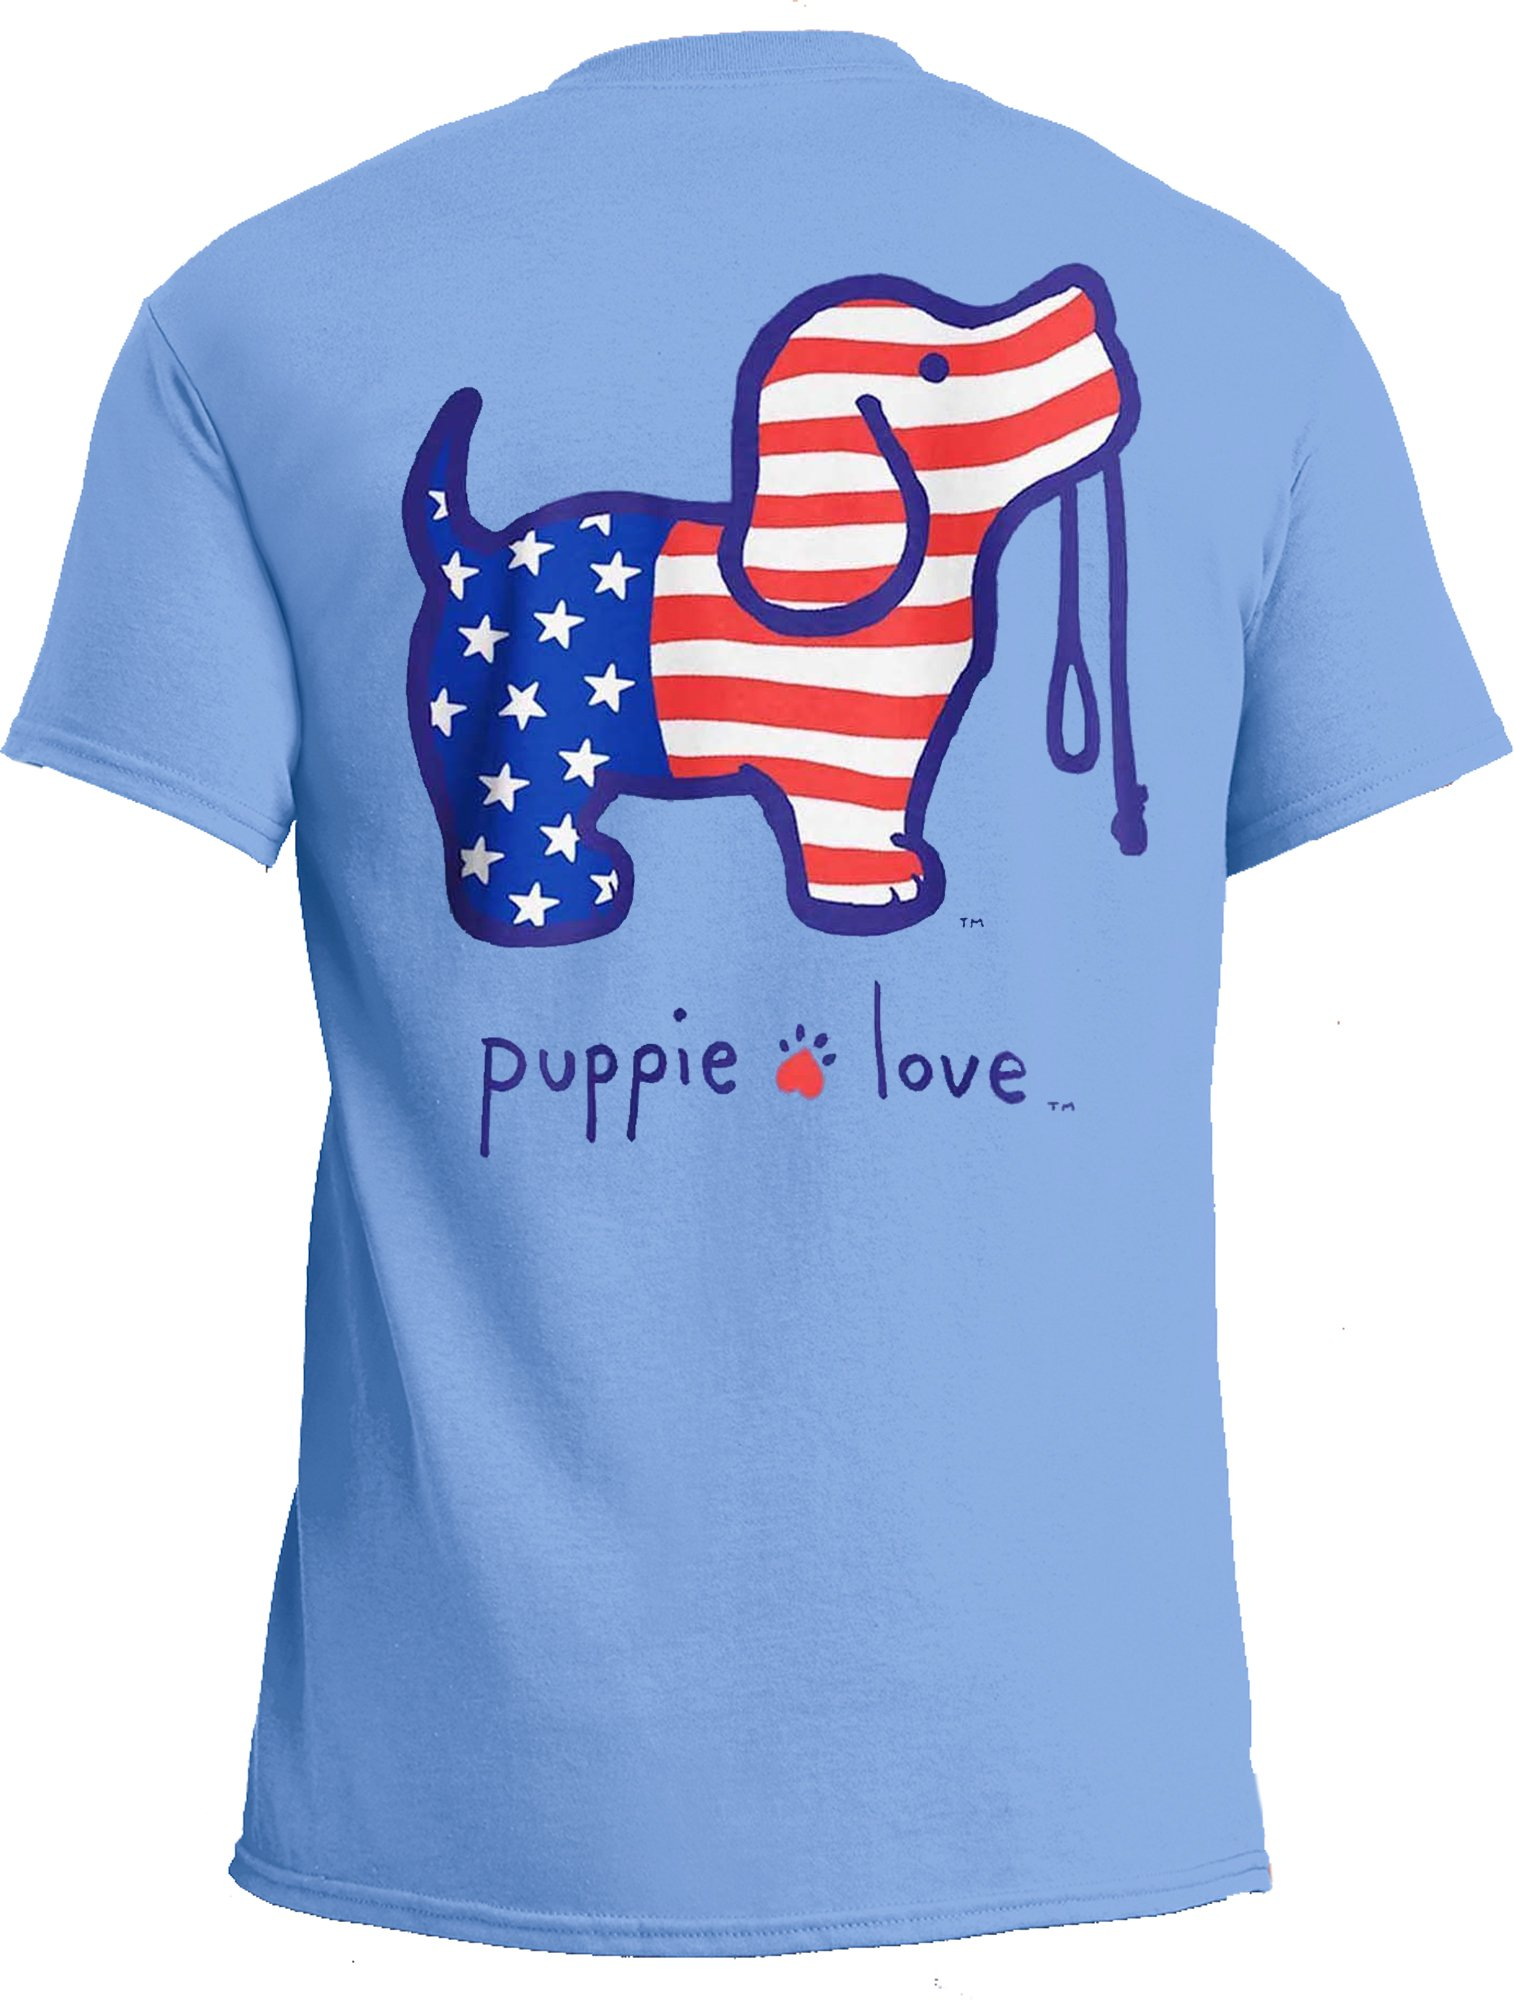 Puppie Love Rescue Dog Adult Unisex Short Sleeve Cotton T-Shirt, USA Pup (Medium, Carolina Blue)